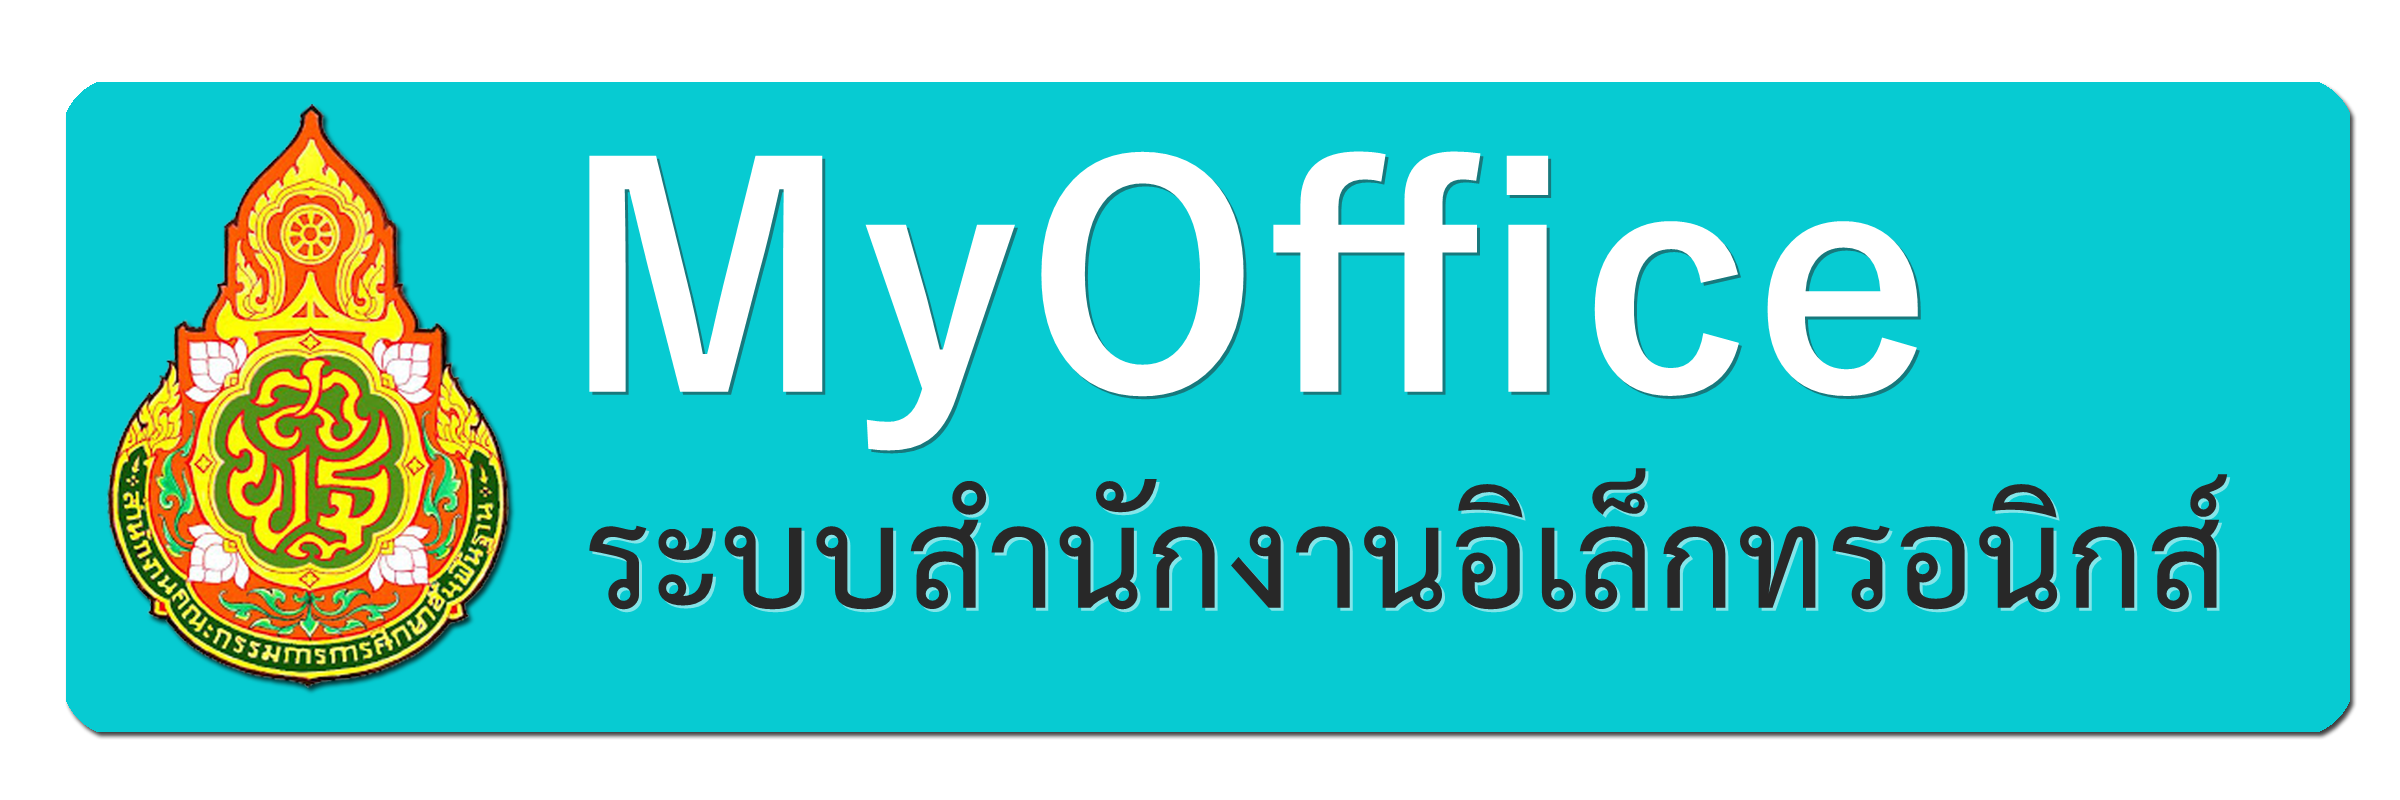 http://159.192.132.107/myoffice/2563/index.php